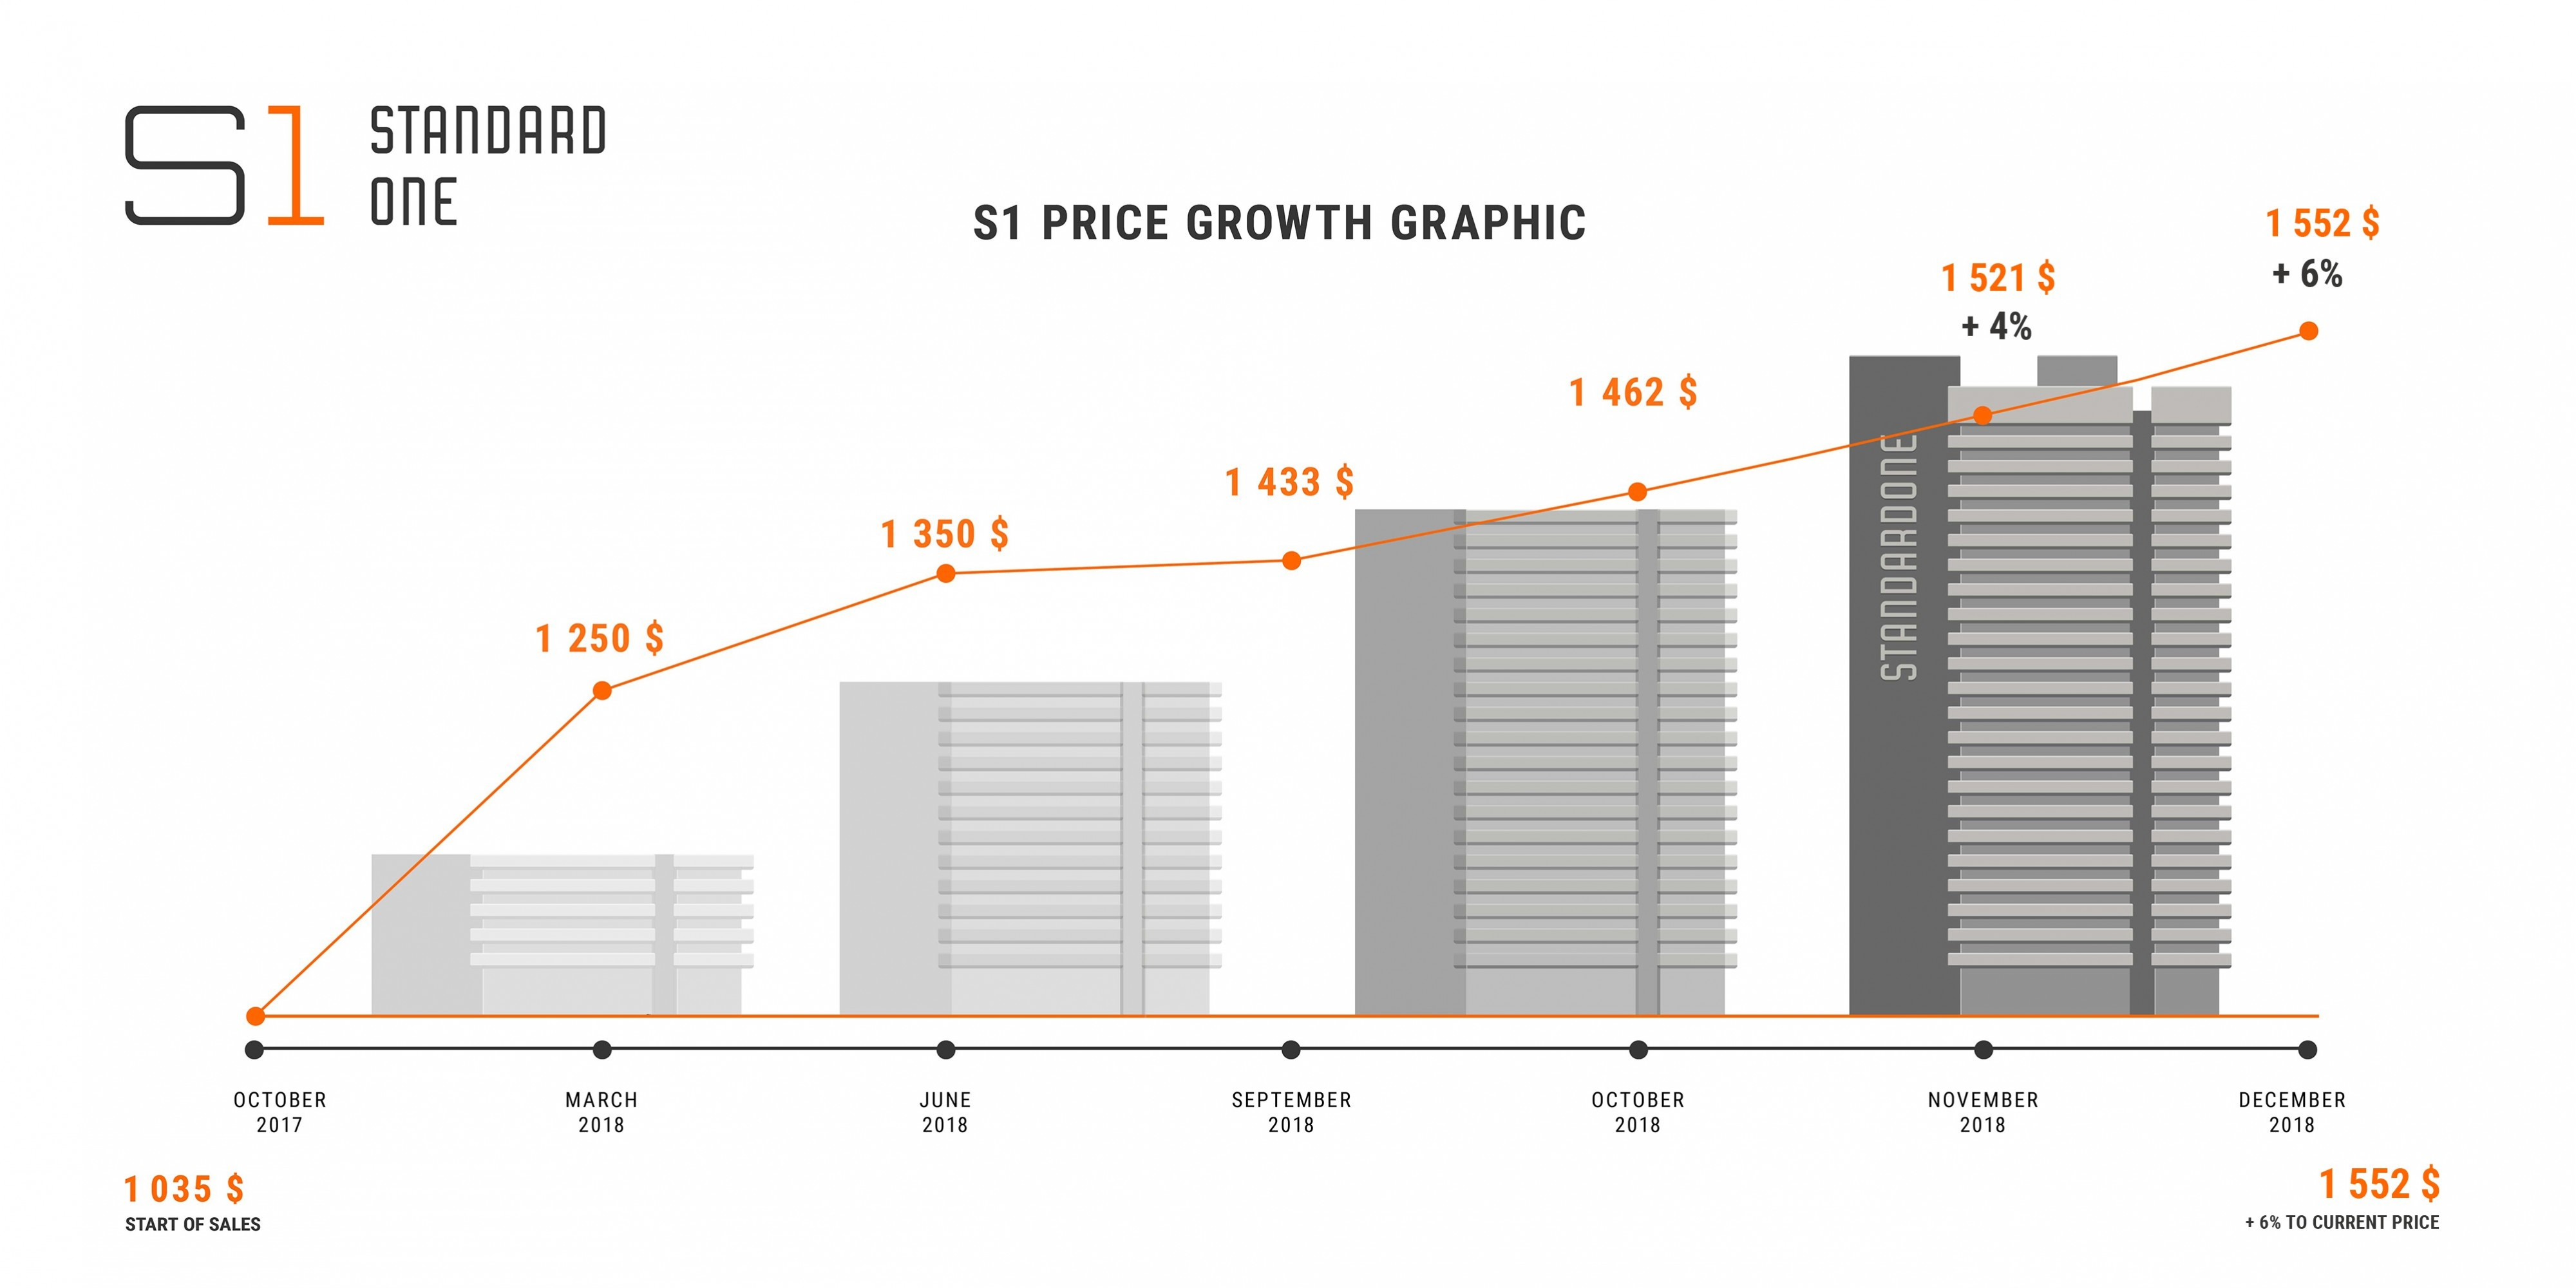 Price growth graphic